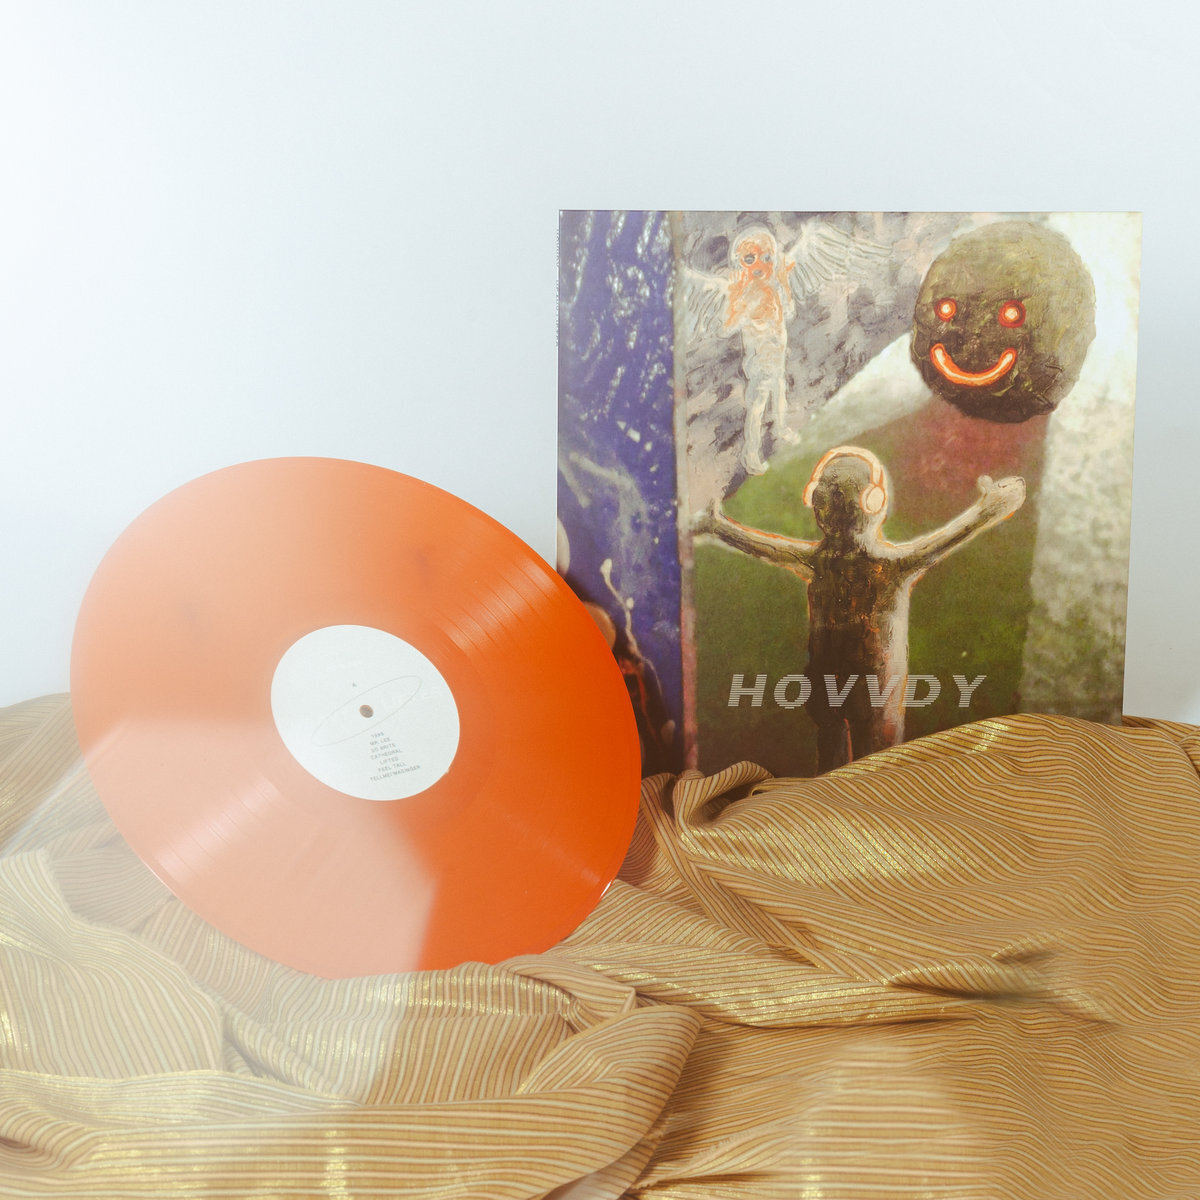 Hovvdy / Heavy Lifter(LP)